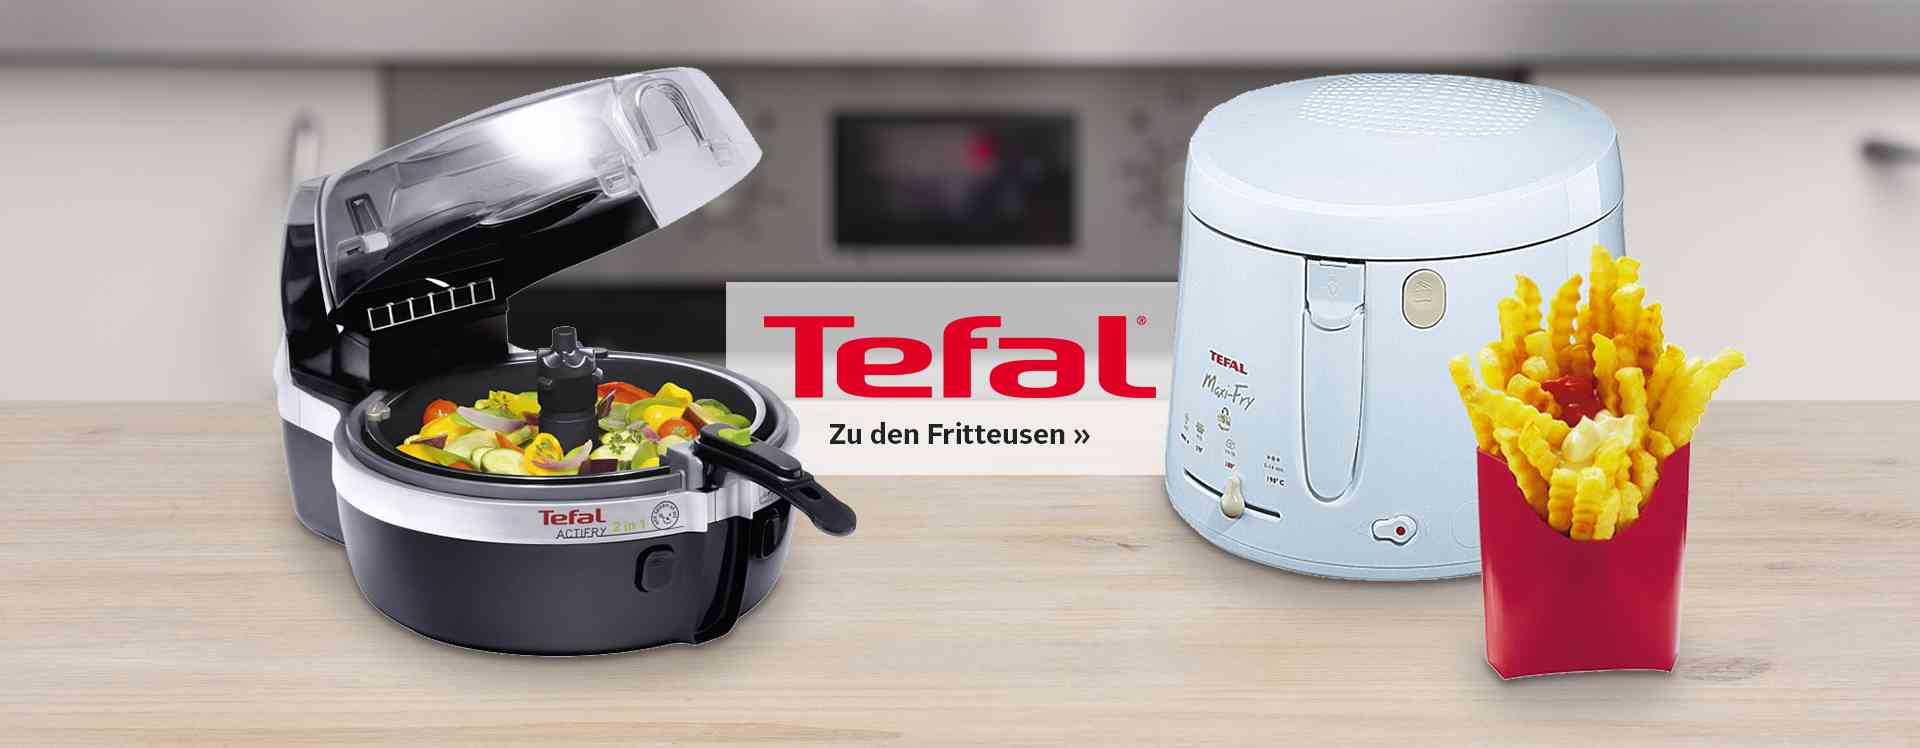 tefal haushaltswaren online kaufen otto. Black Bedroom Furniture Sets. Home Design Ideas